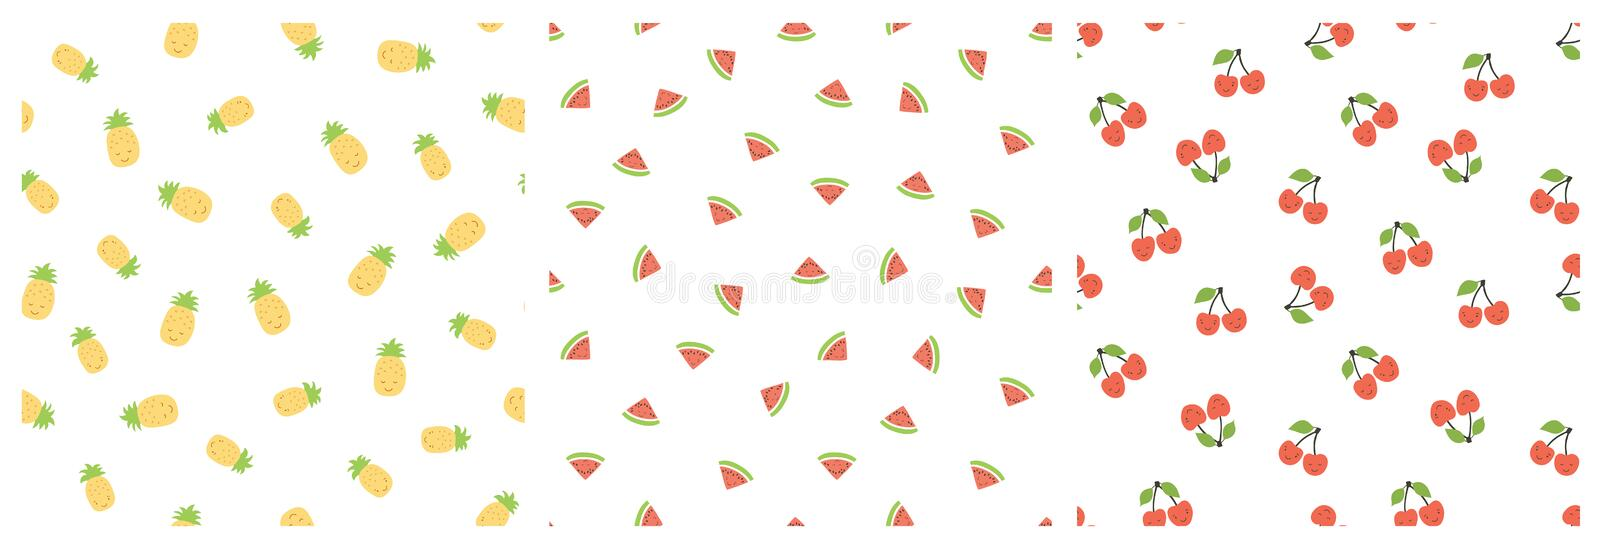 Kid`s seamless pattern. Smiling pineapple, watermelon, cherry. Exotic fruit fashion print. Design elements for baby textile or vector illustration